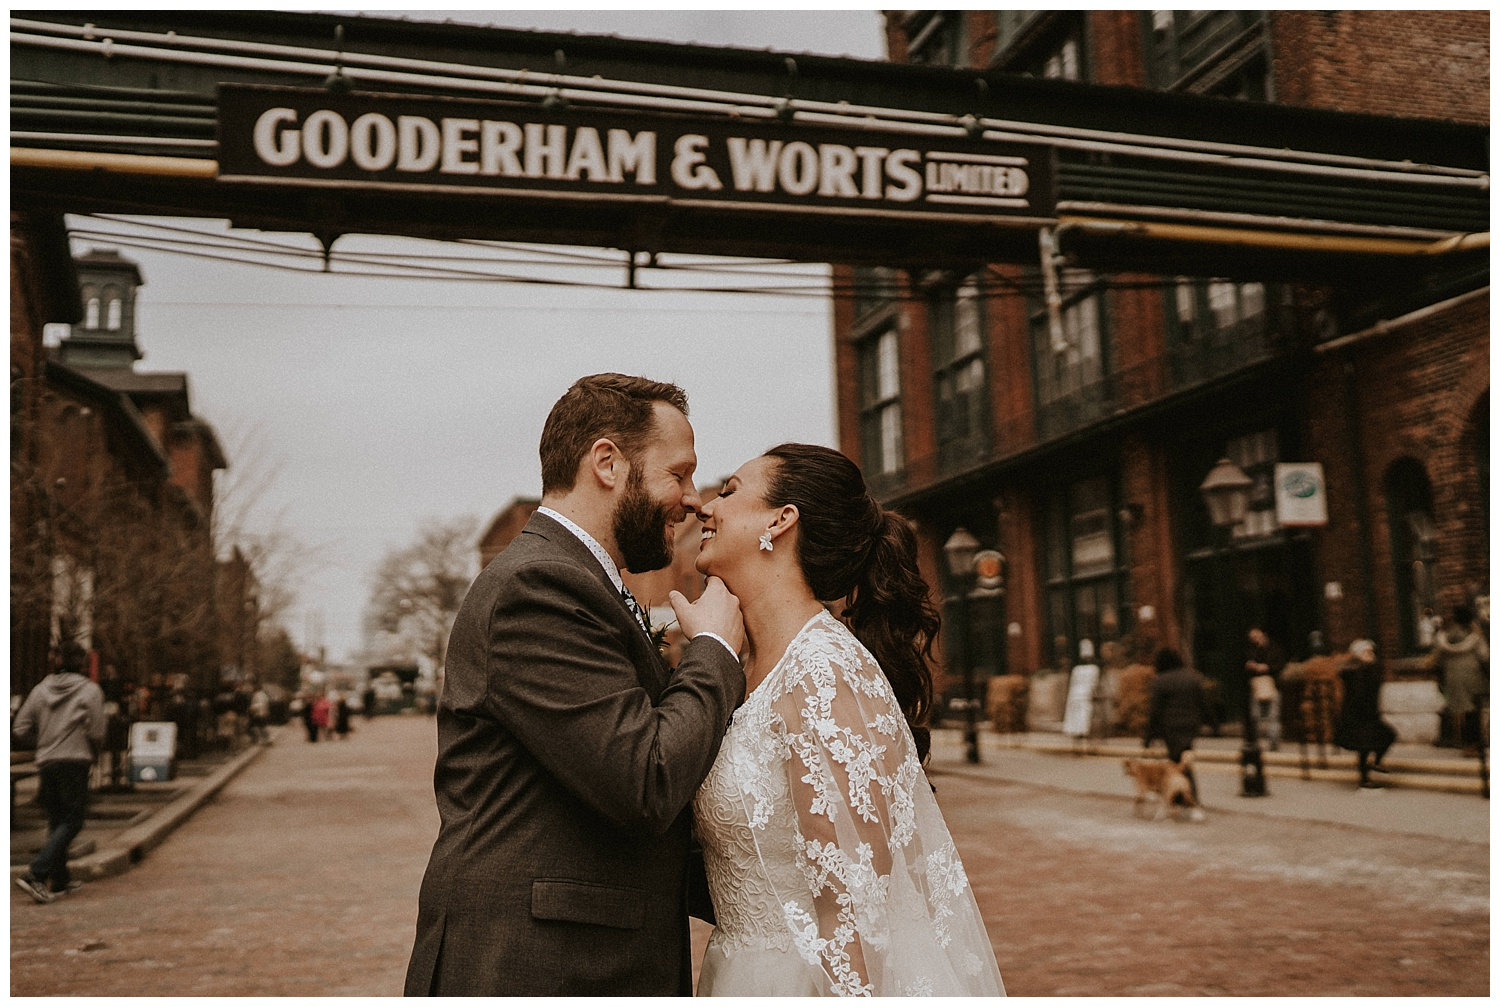 Katie Marie Photography | Archeo Wedding Arta Gallery Wedding | Distillery District Wedding | Toronto Wedding Photographer | Hamilton Toronto Ontario Wedding Photographer |_0020.jpg